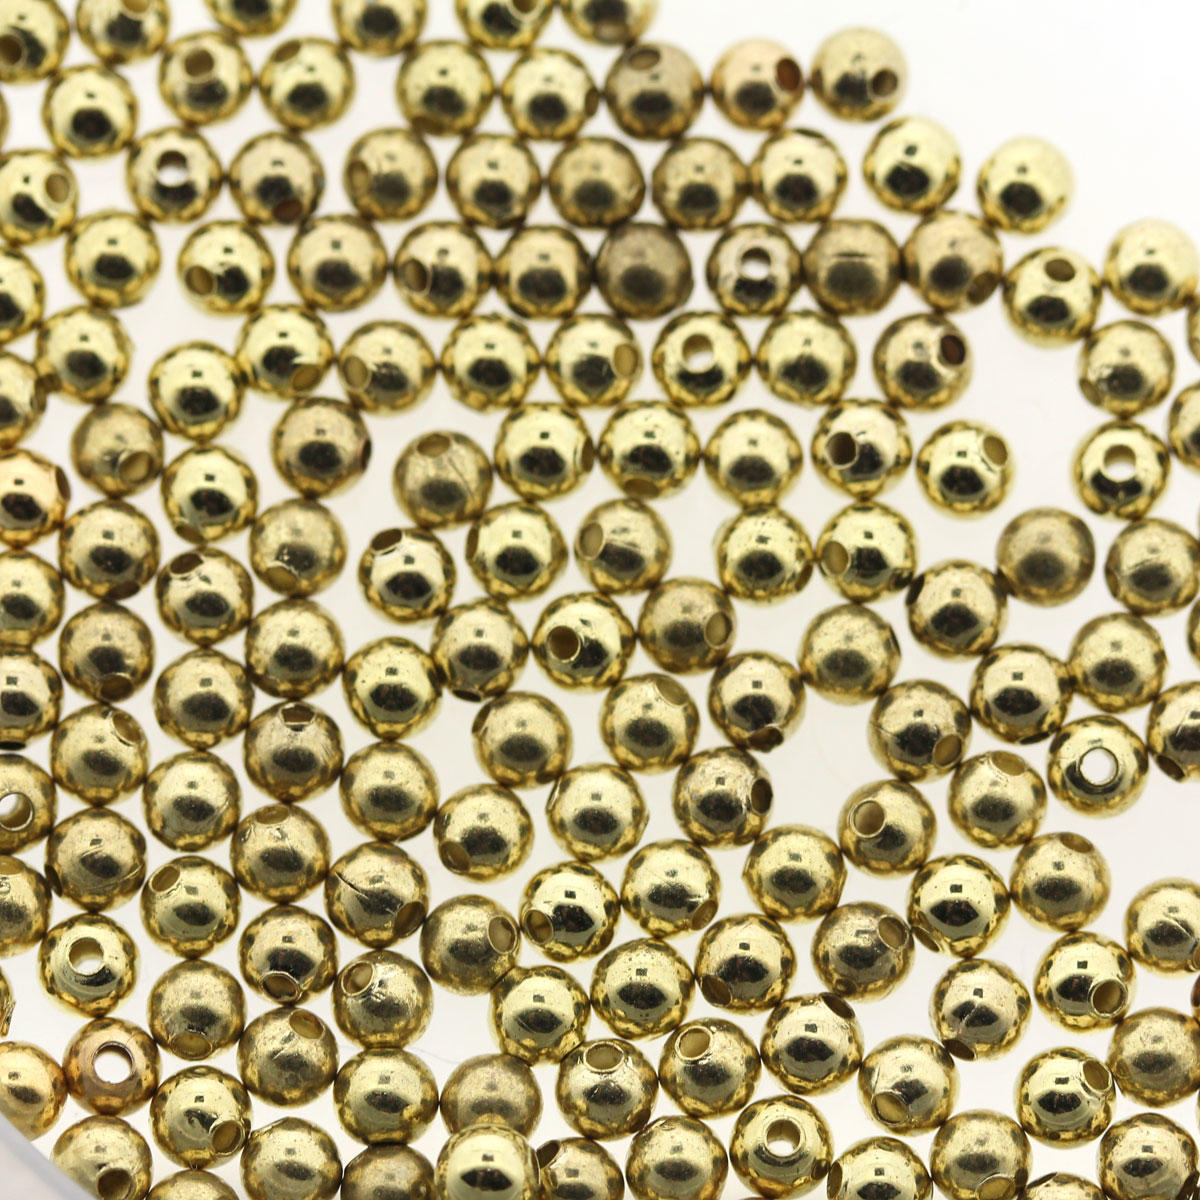 Light Gold 3mm Round Metal Beads